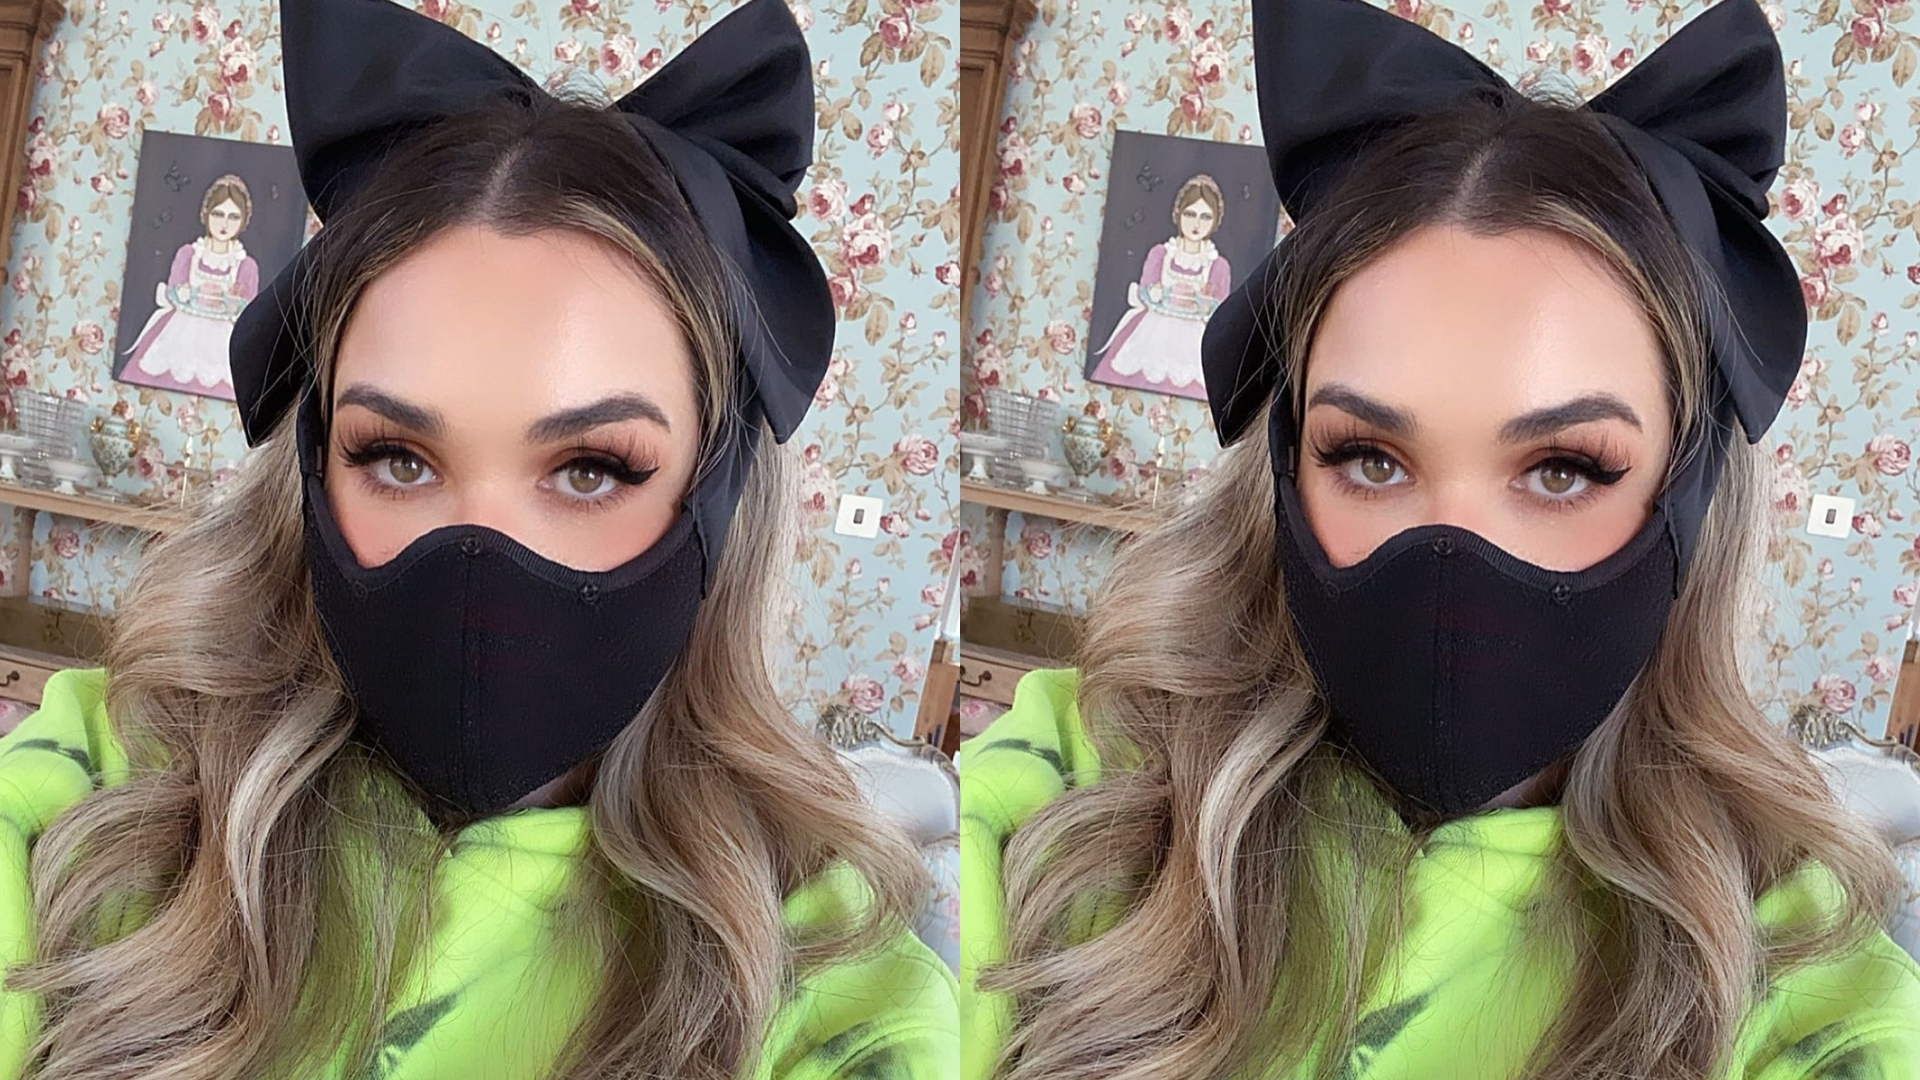 Yes, these are the cutest face masks you'll ever see, and